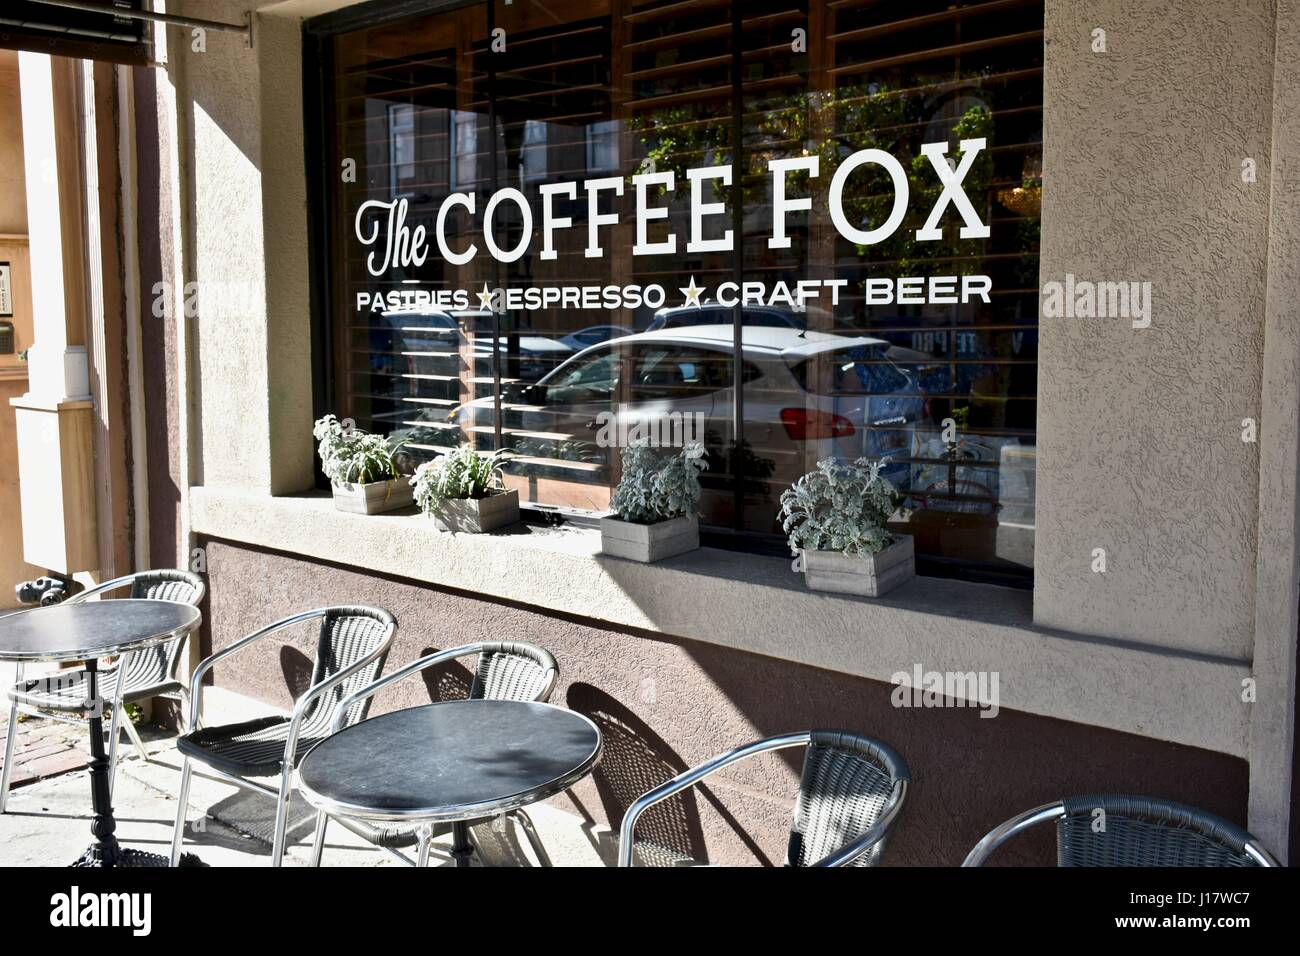 coffee fox stock photos coffee fox stock images alamy